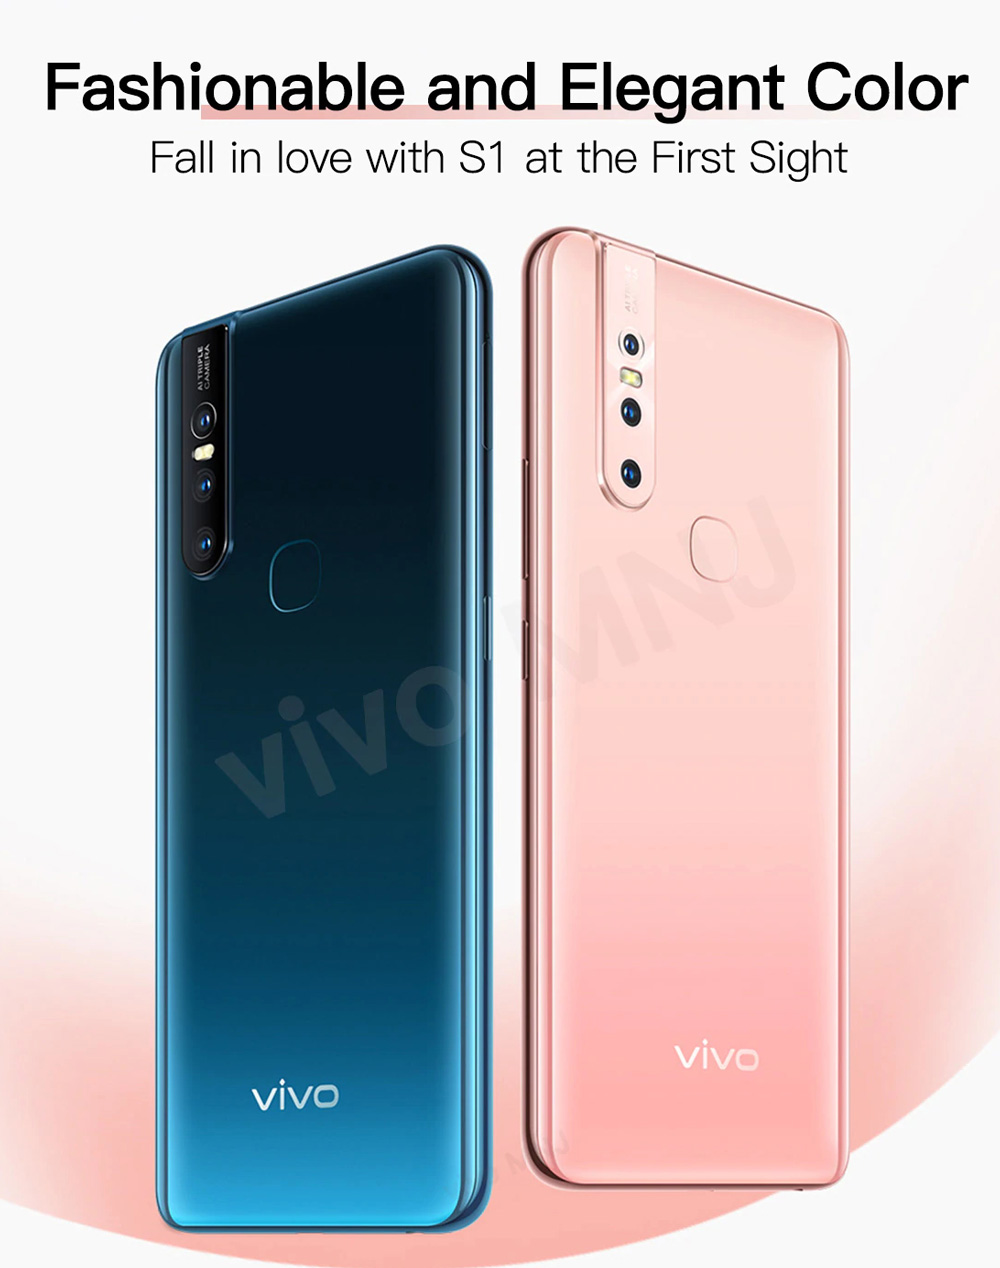 buy vivo s1 smartphone